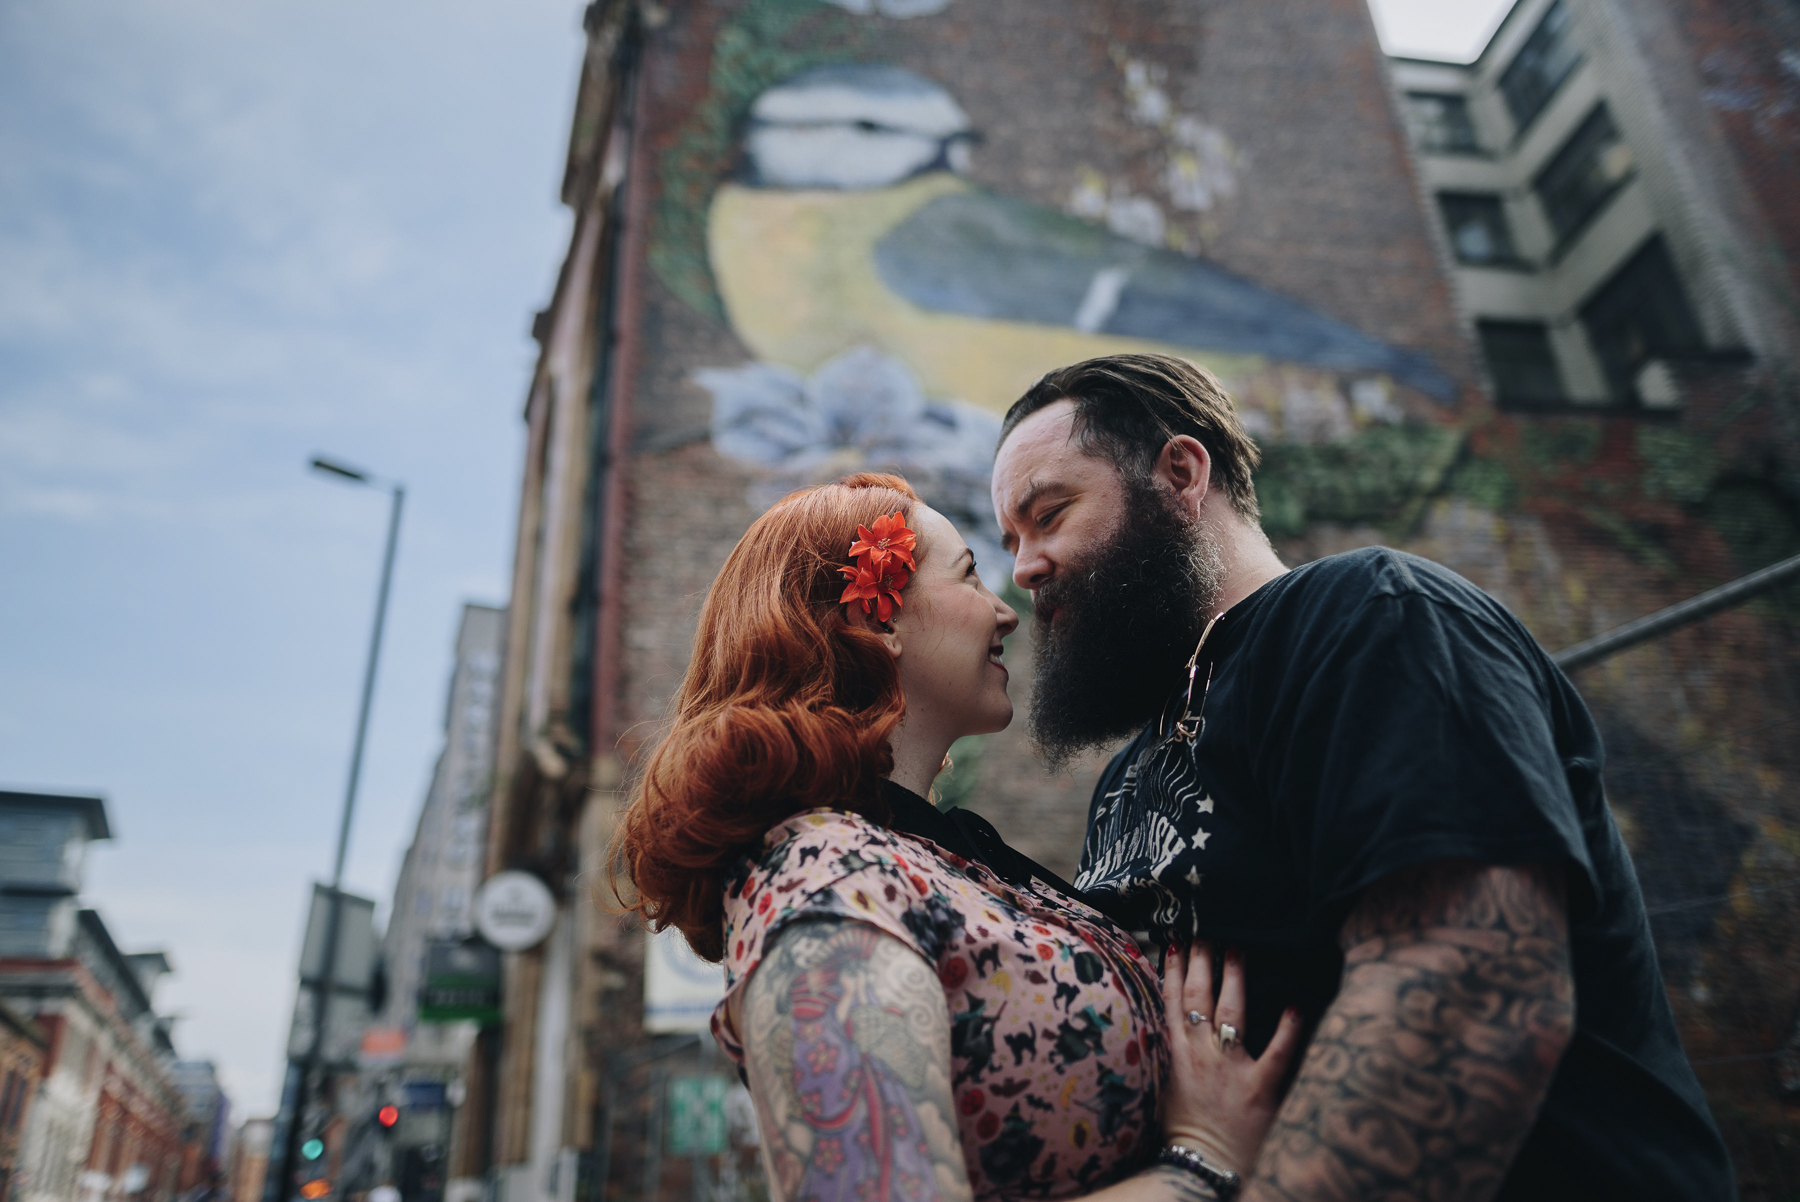 Manchester_Engagement_Photography_Northers_Quarter_The_Pin-Up_Bride-51.jpg